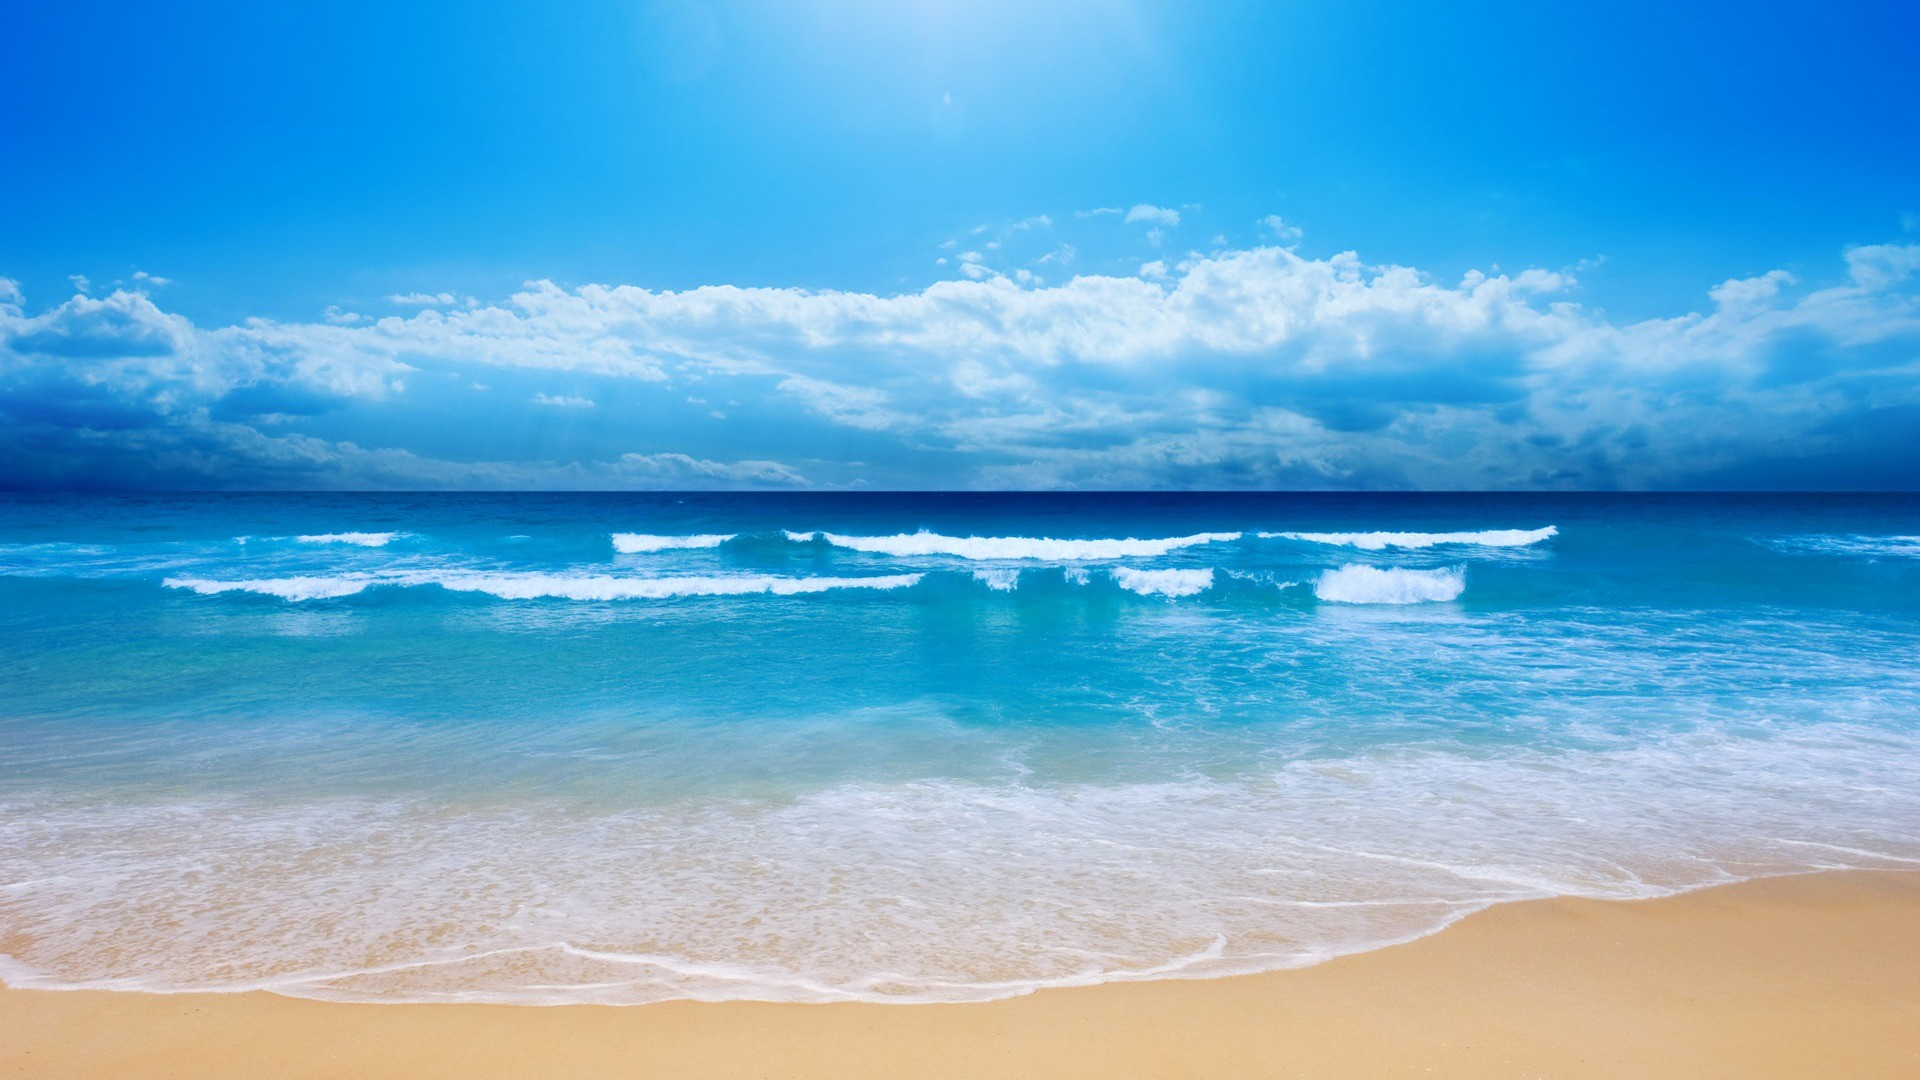 1920x1080 Small Wave Wallpaper Beaches Nature Wallpapers